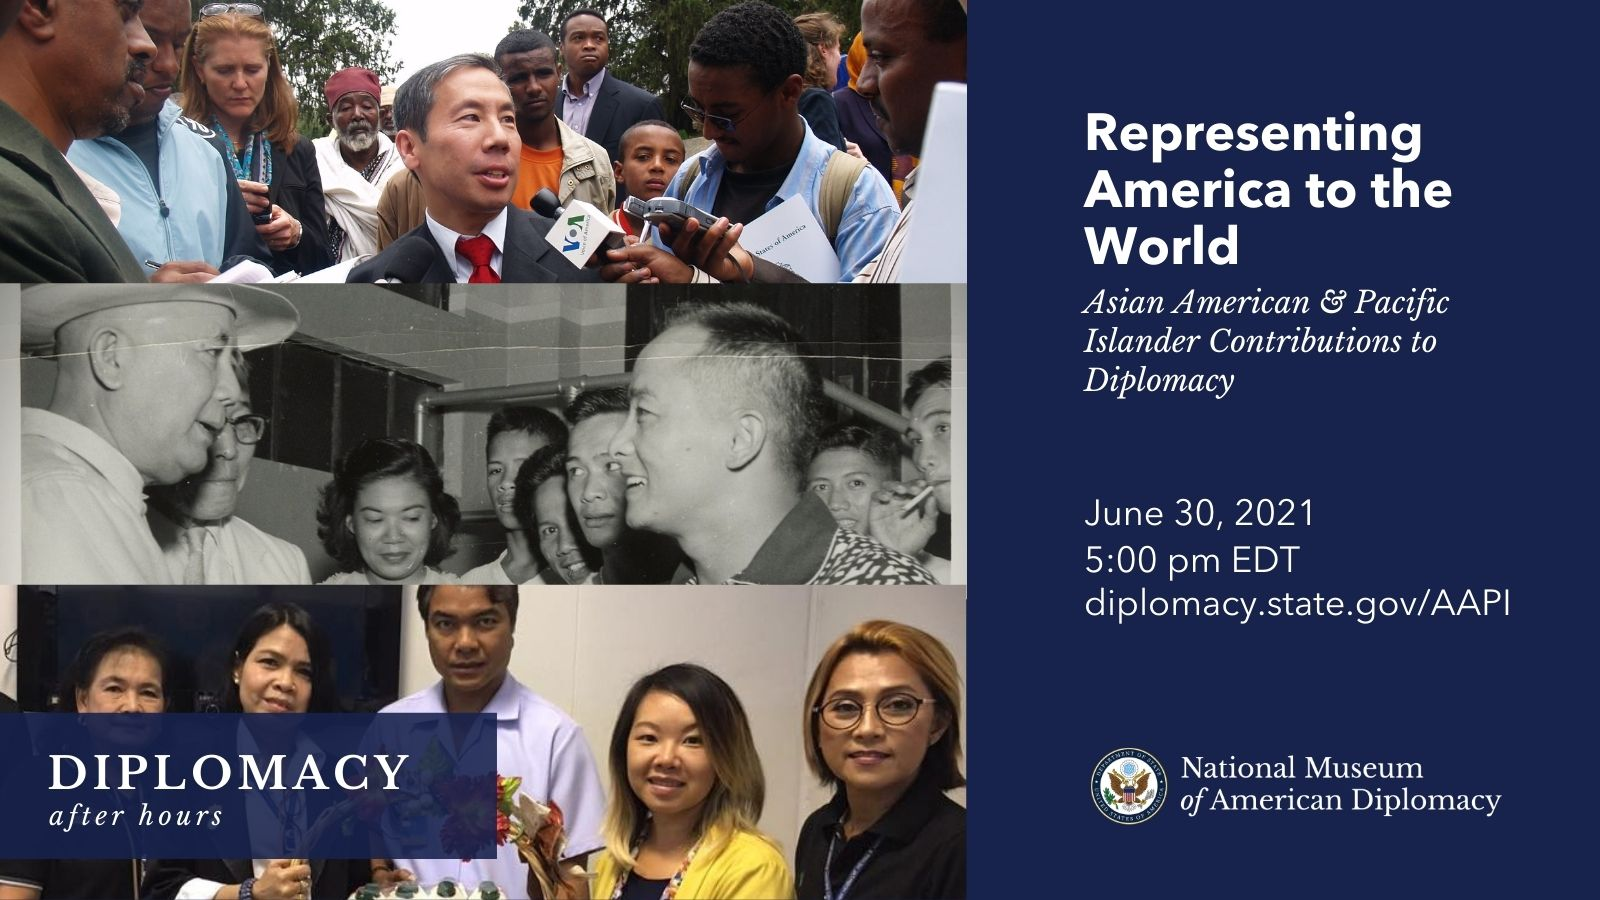 Diplomacy After Hours Asian American & Pacific Islander contributions to diplomacy